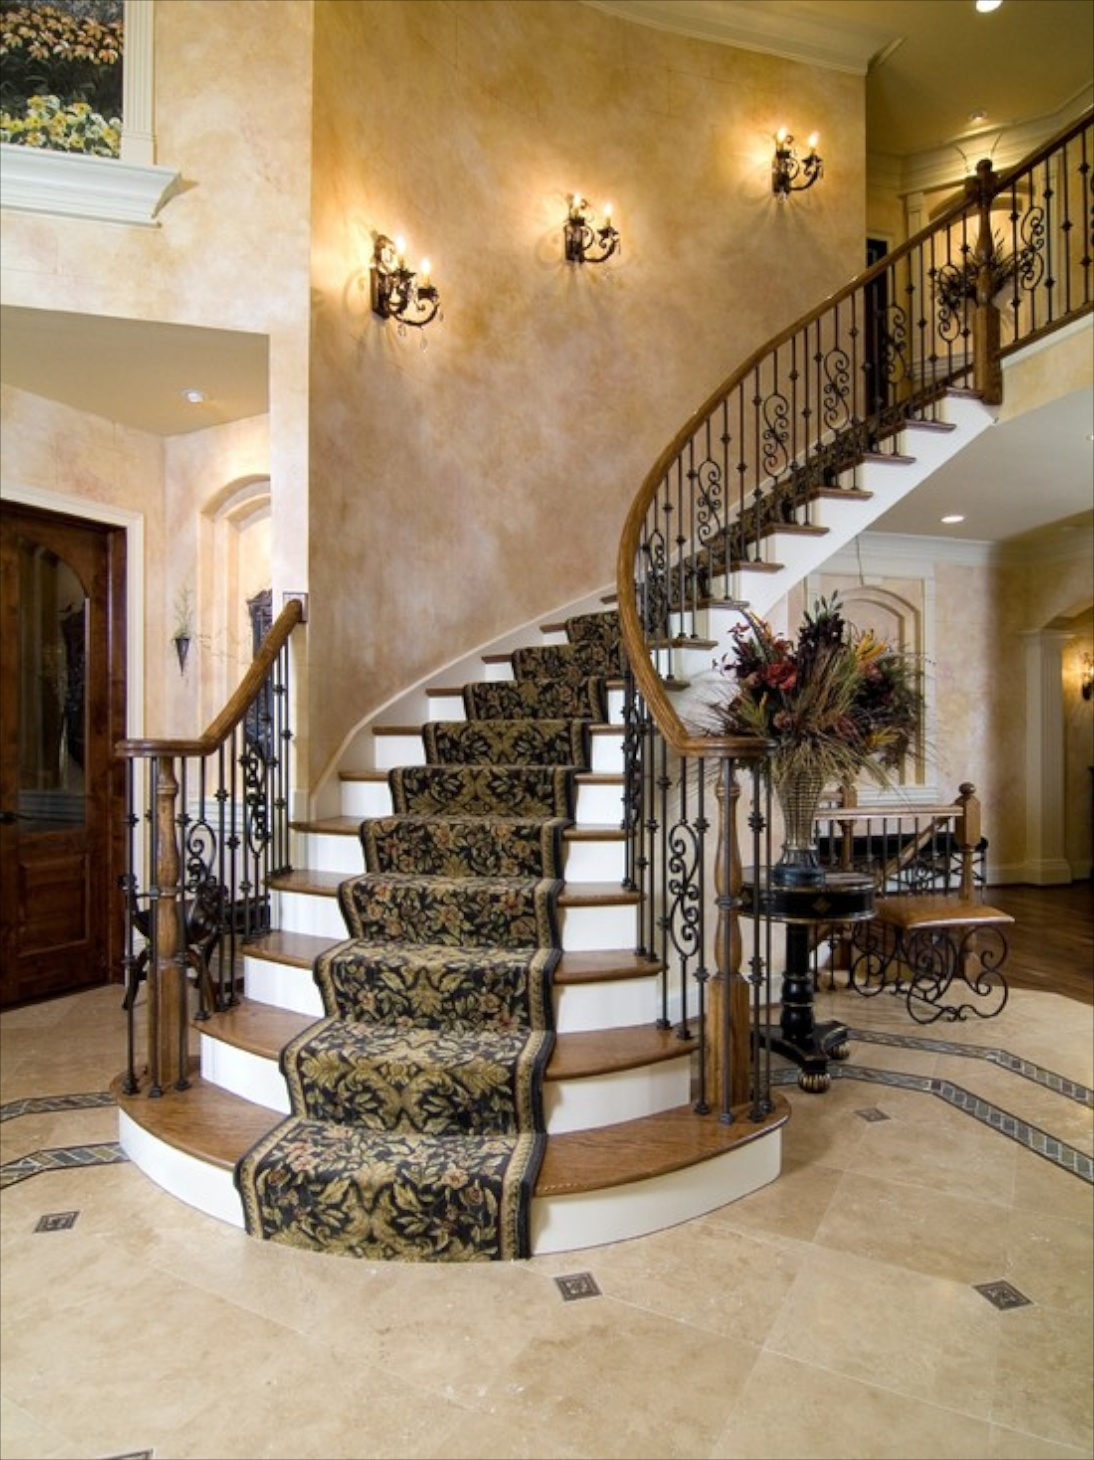 Add A Descriptionhttpwww Houzz Comcarpet Stair Treadsp112 on Round Circle House Floor Plans